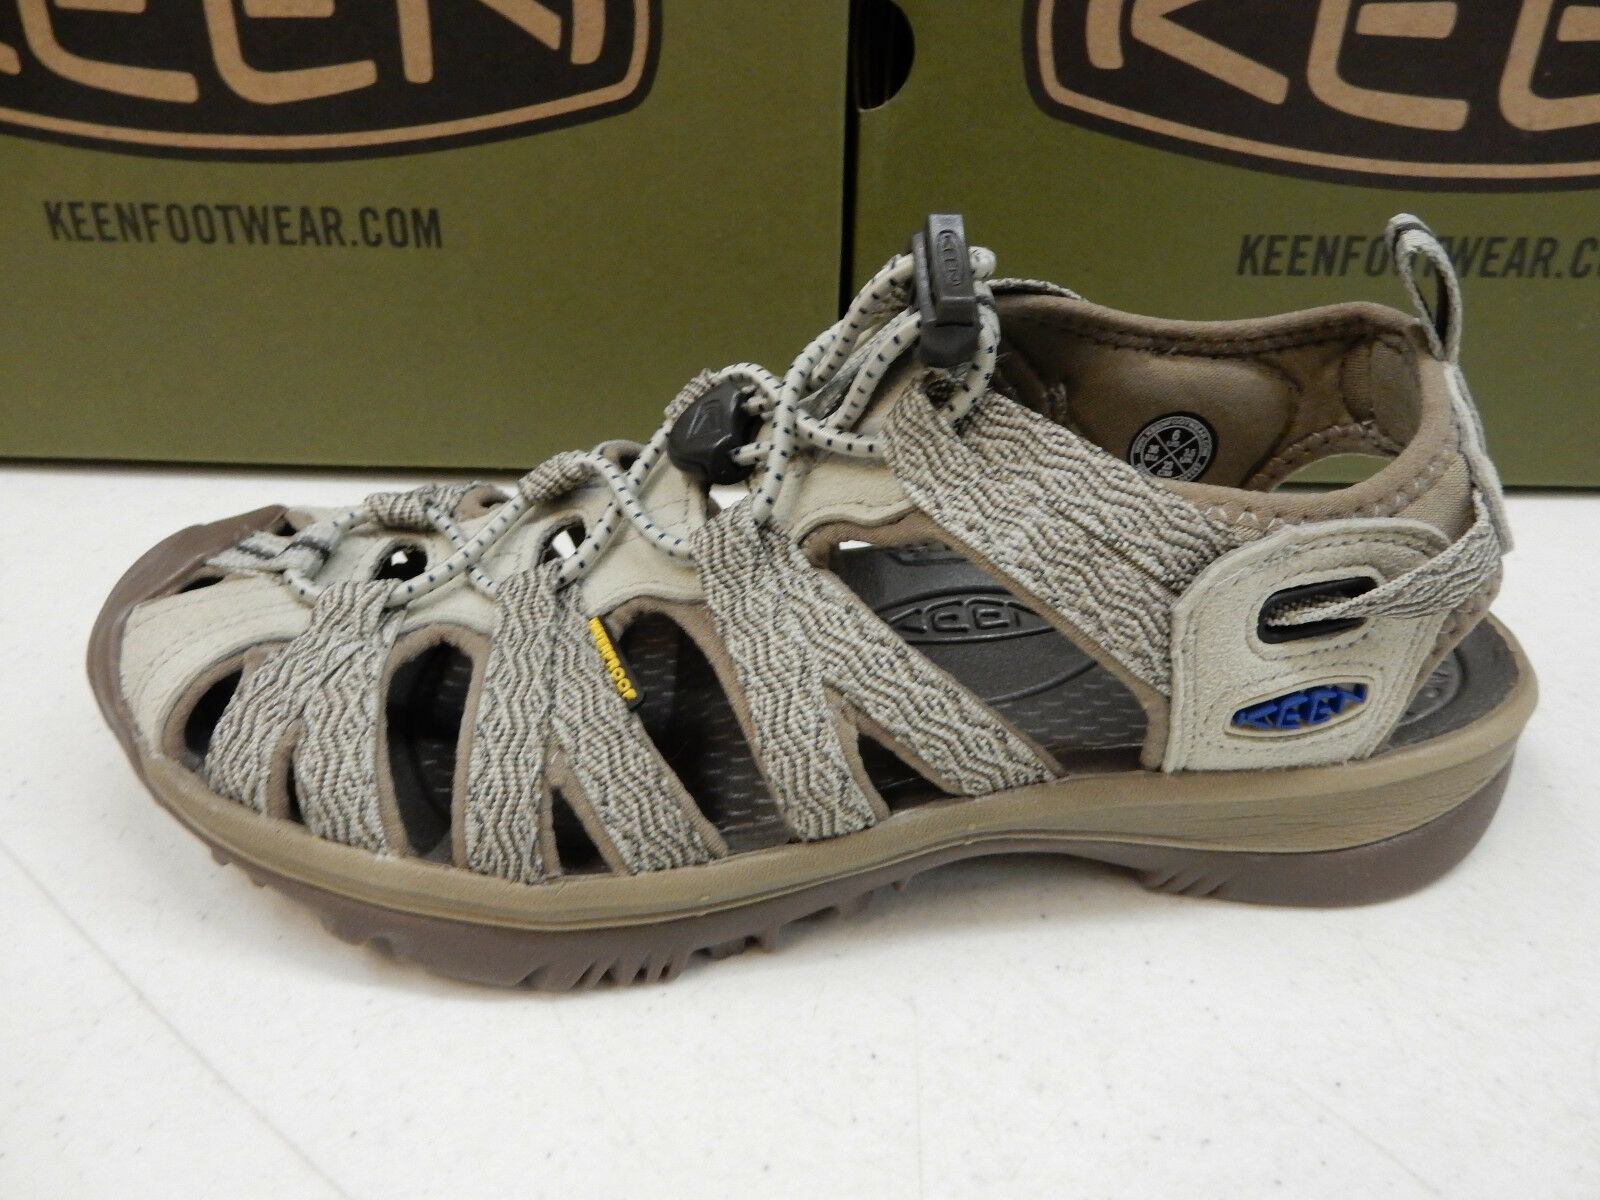 KEEN WOMENS SANDALS WHISPER AGATE GREY blueE OPAL SIZE 7